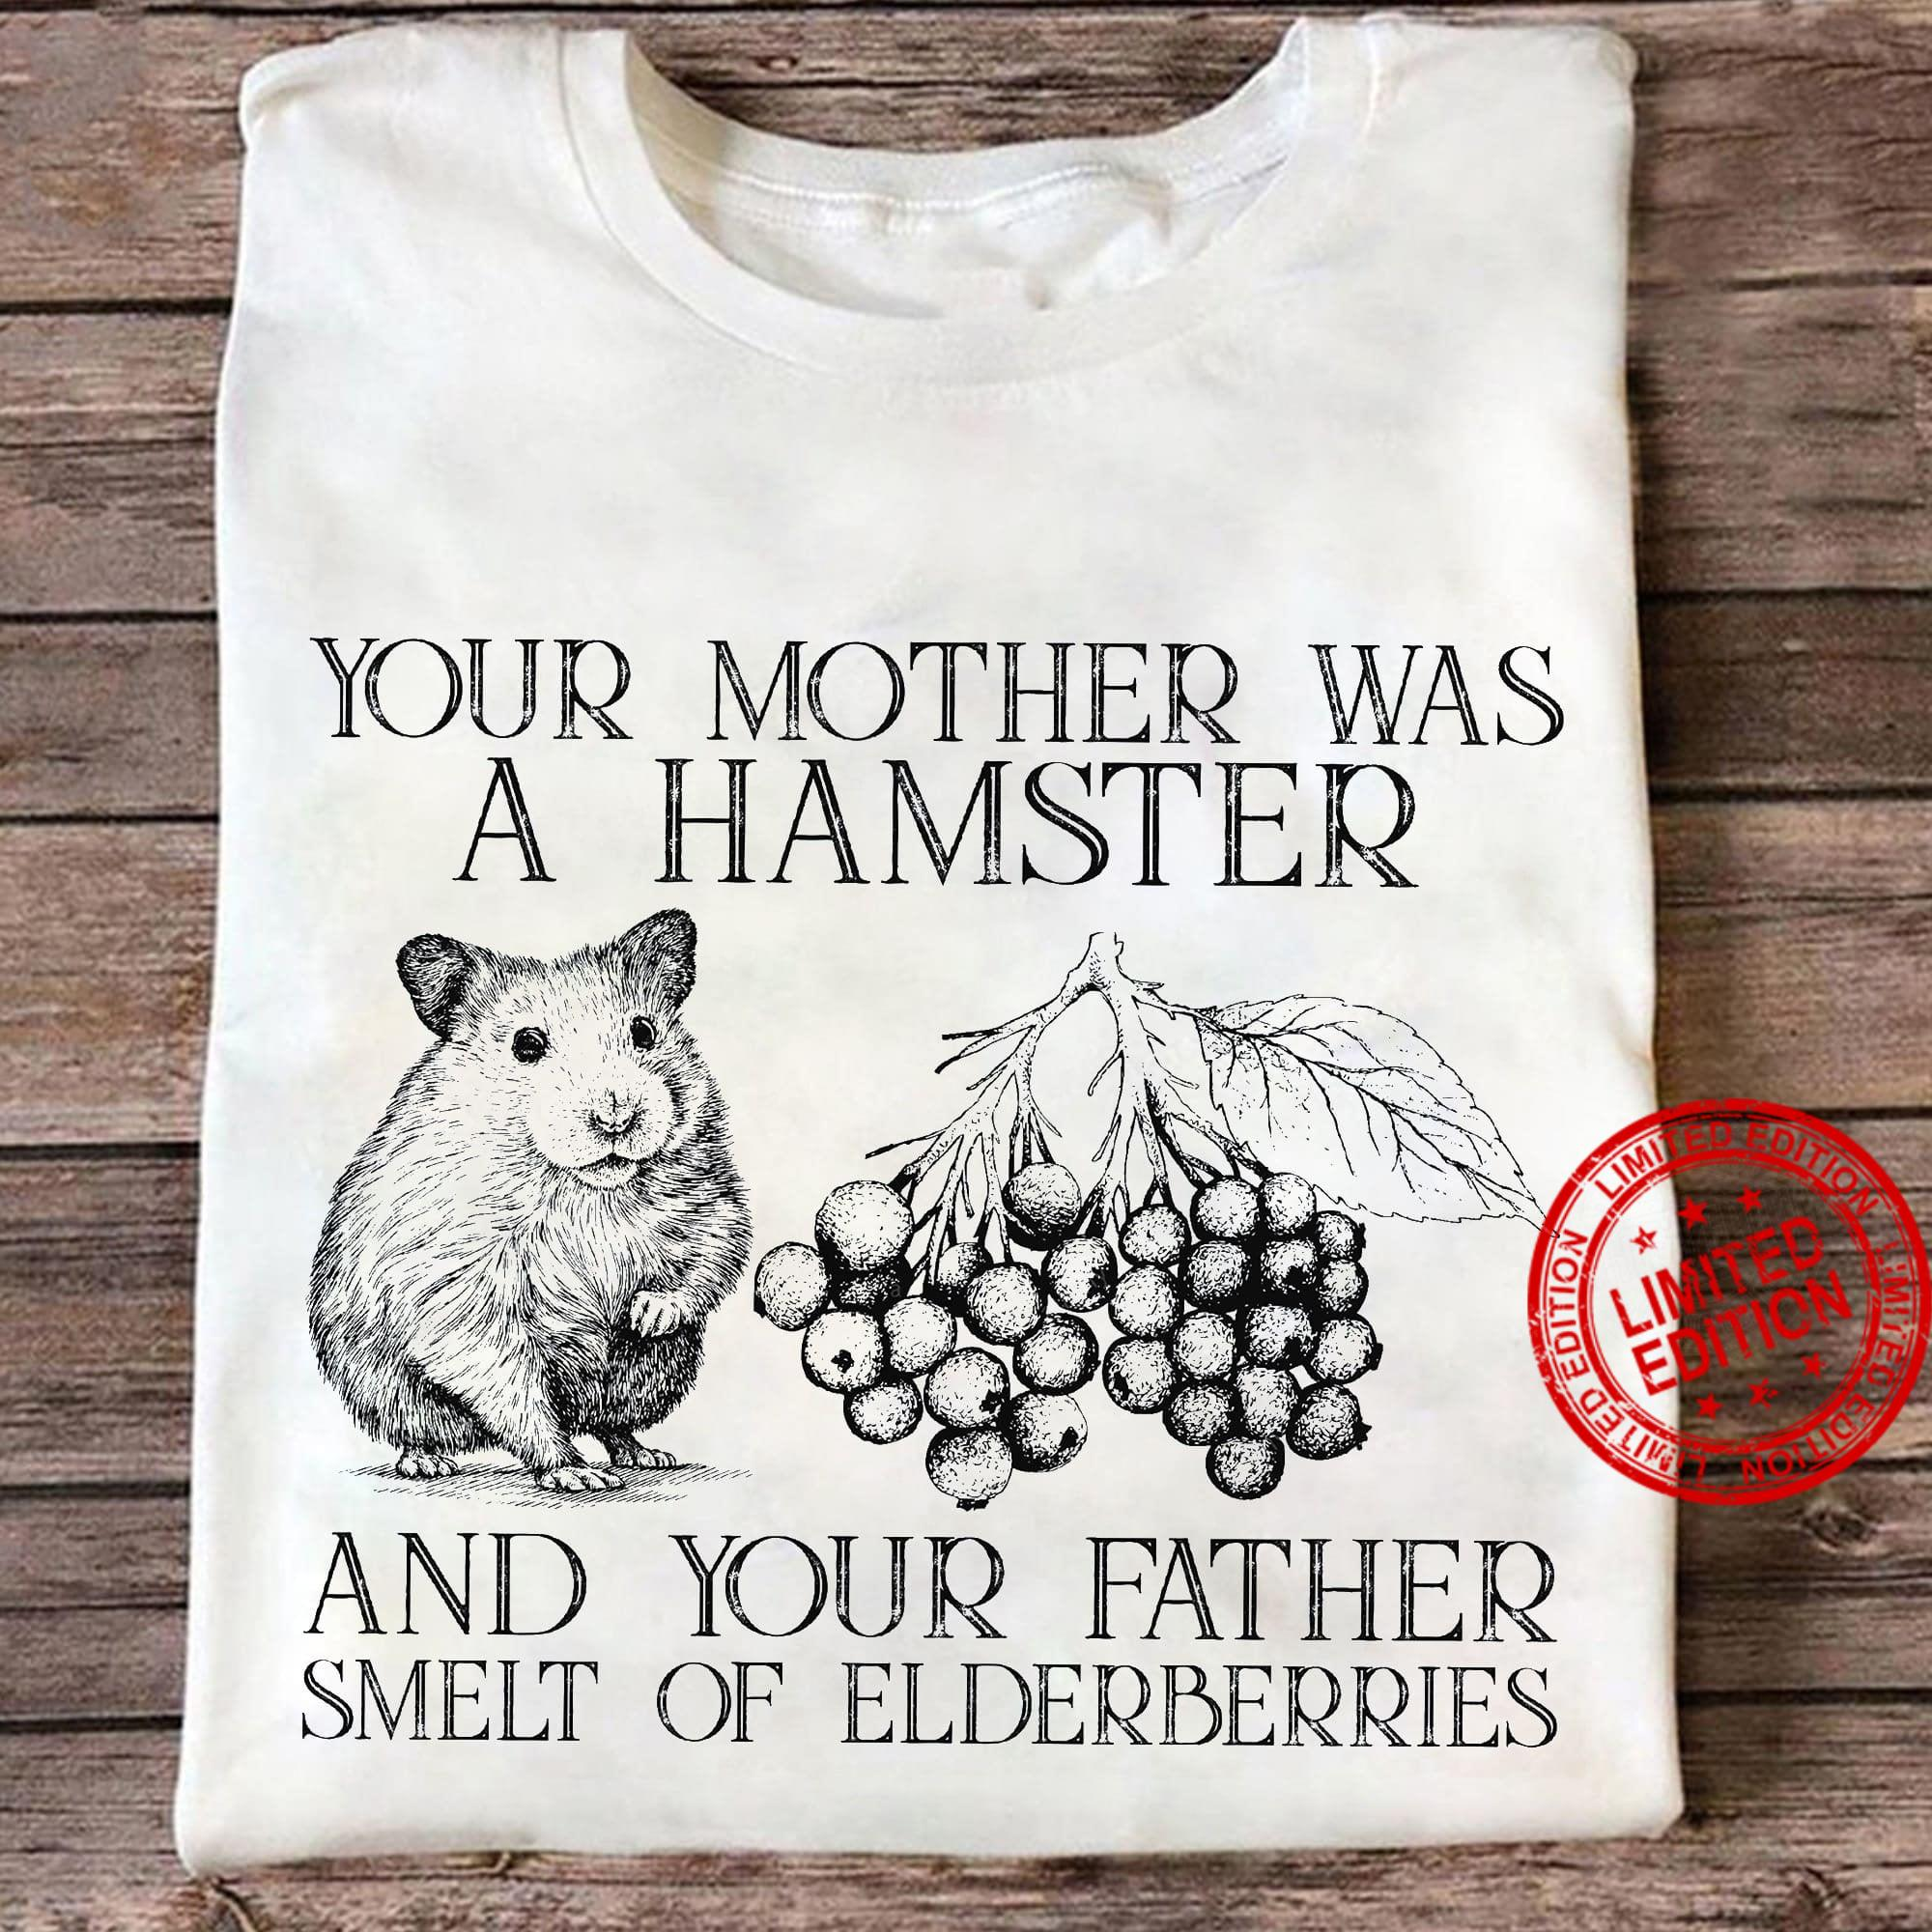 Your Mother Was A Hamster And Your Father Smelt Of Elderberries Shirt